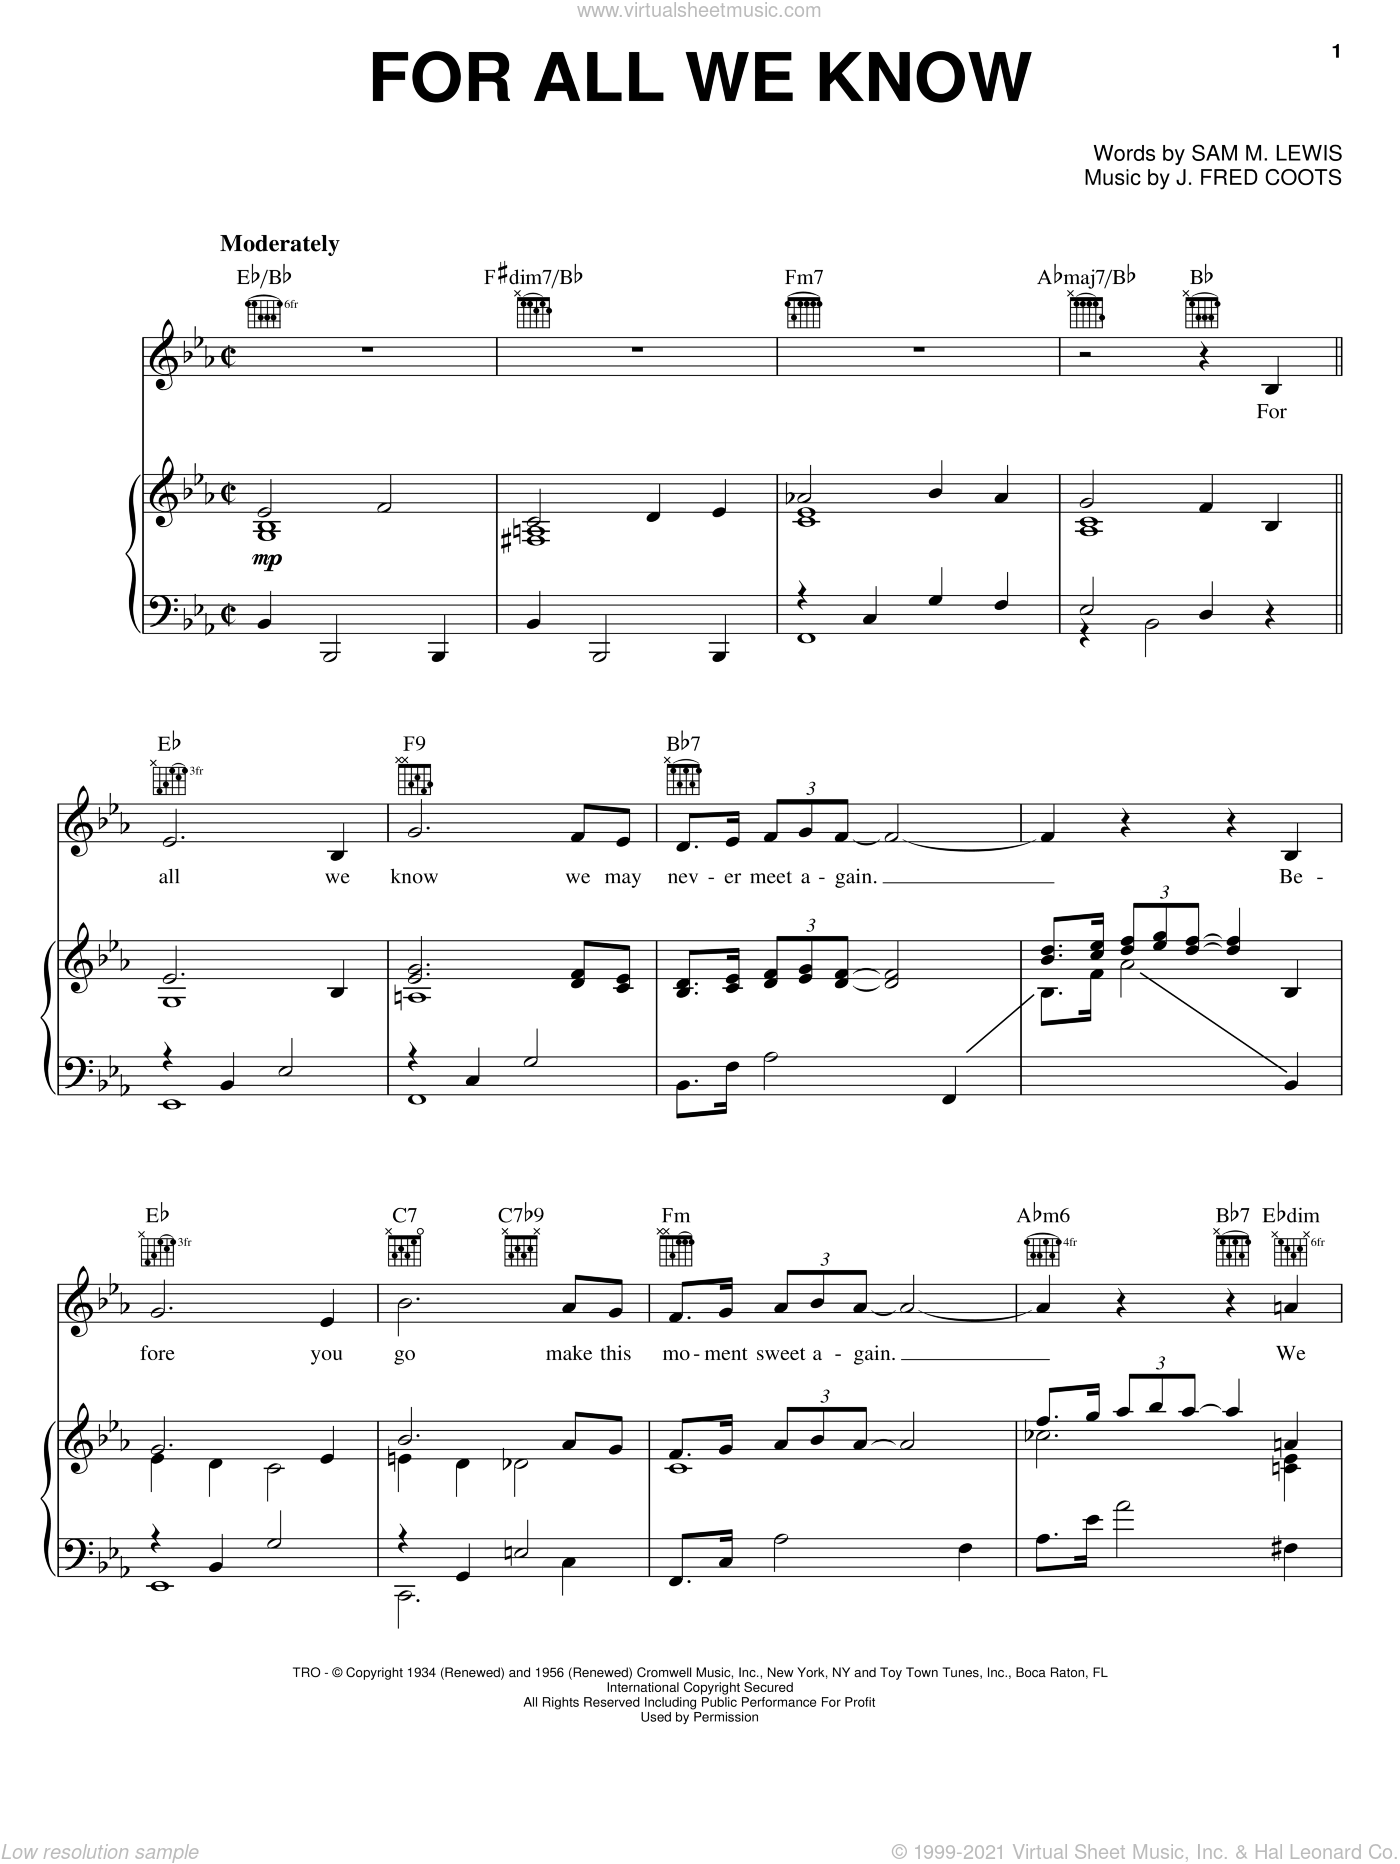 For All We Know sheet music for voice, piano or guitar by J. Fred Coots